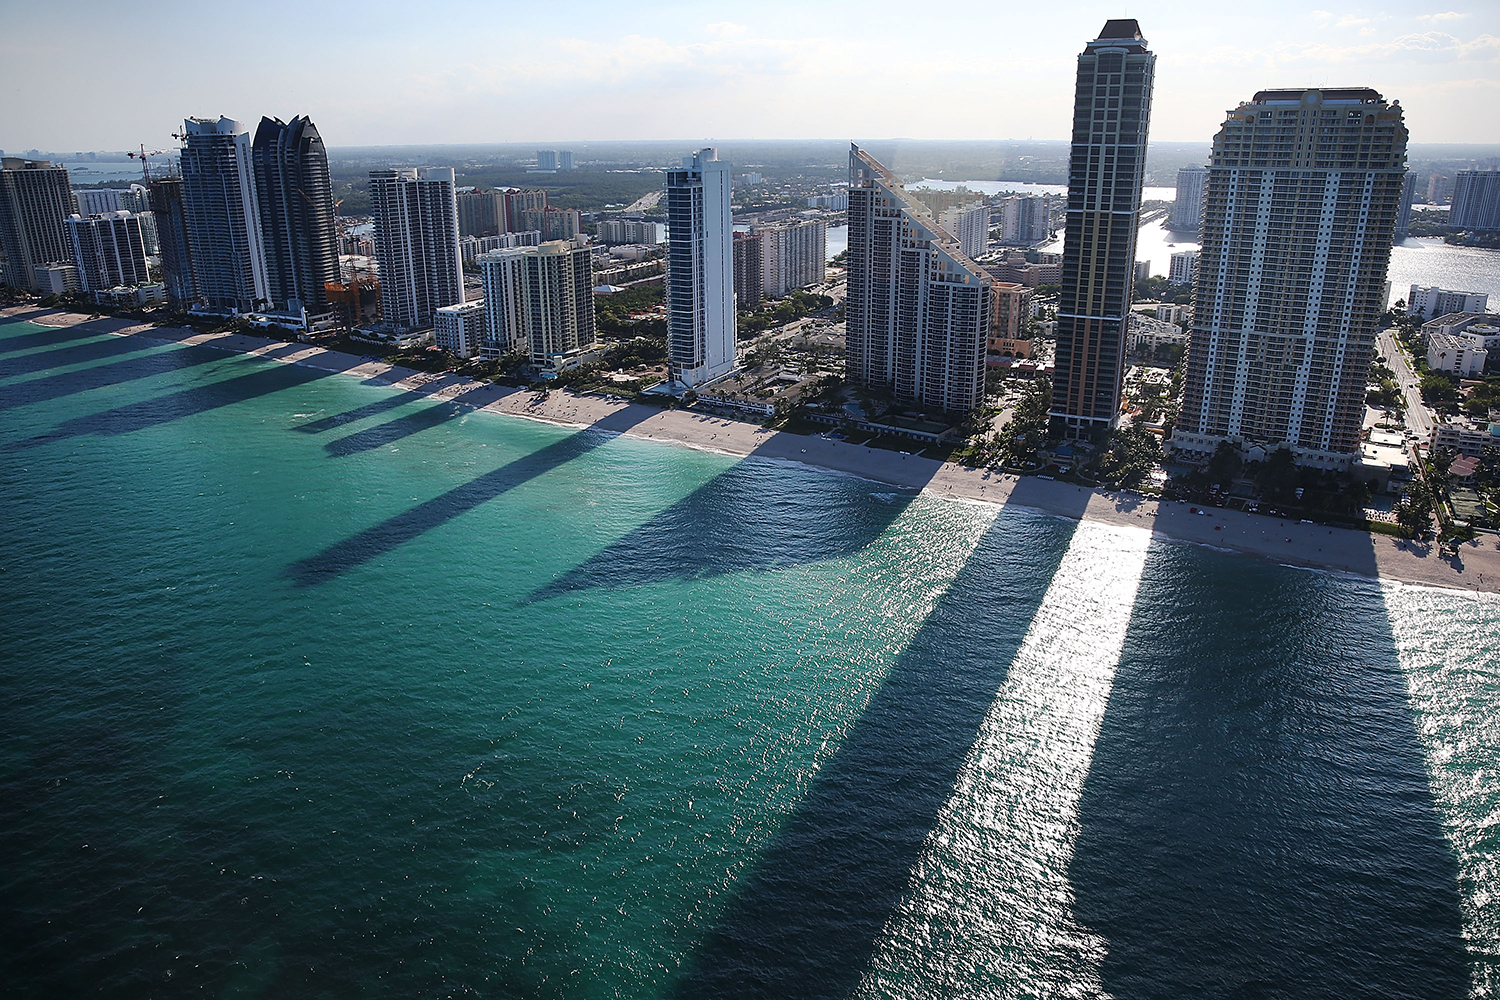 Condo buildings line the beach in Sunny Isle, Florida, on April 5, 2016. The Panama Papers found a possible tie between condo purchases in South Florida and secret offshore accounts in Panama, putting the United States among more than 50 countries using Panama as a tax haven.